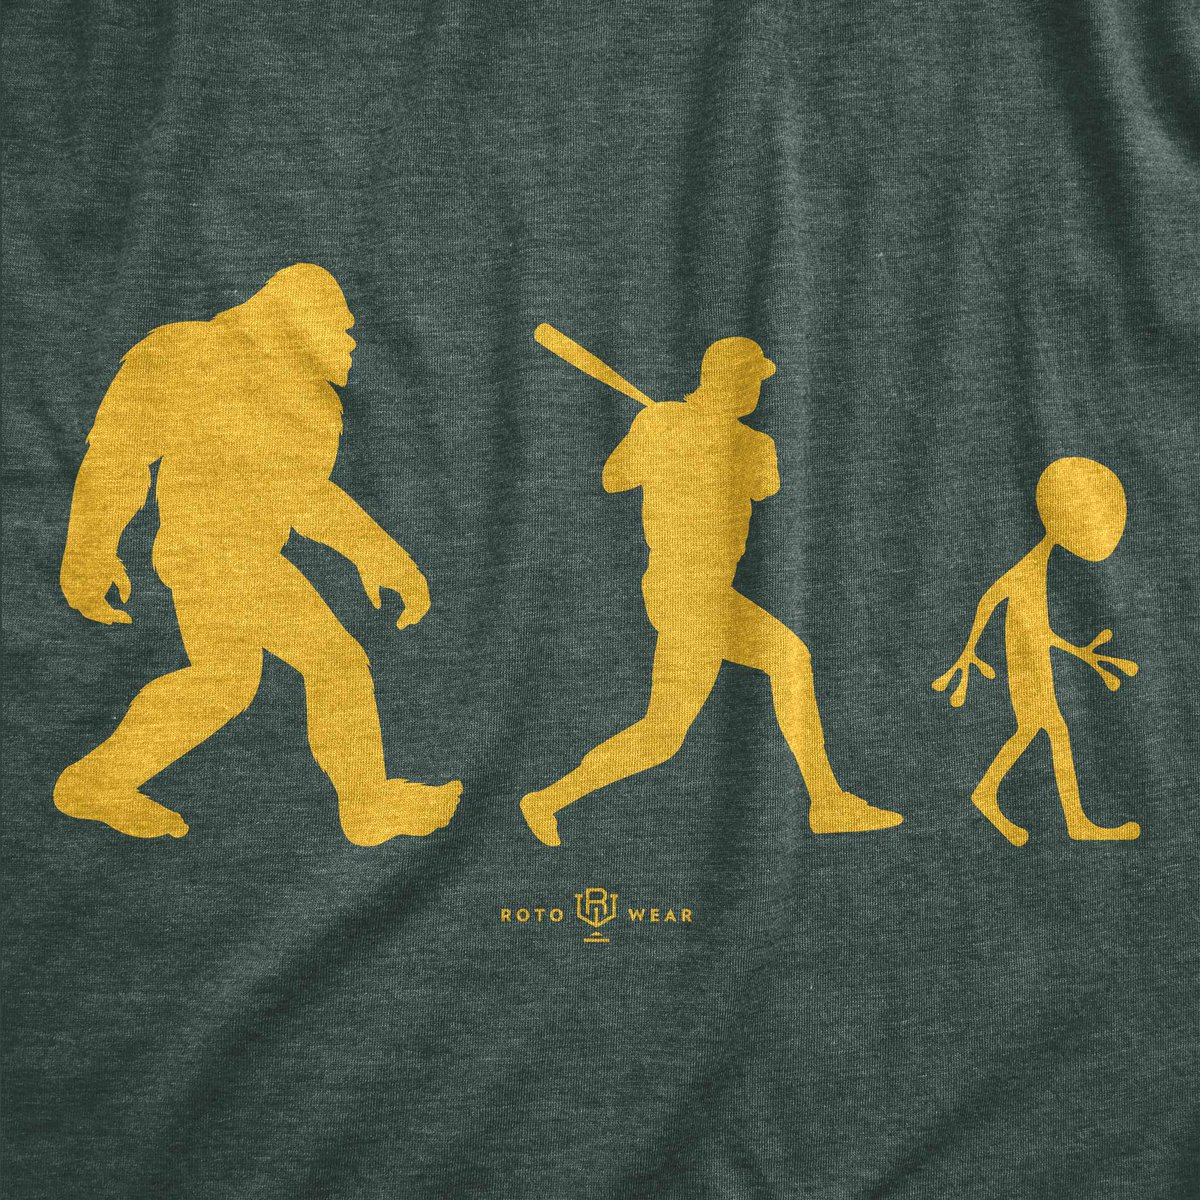 Bigfoot & Alien Excursion  👣👽👕 available only at: https://t.co/pHyz1xkwML https://t.co/iD3GAsXJ7a